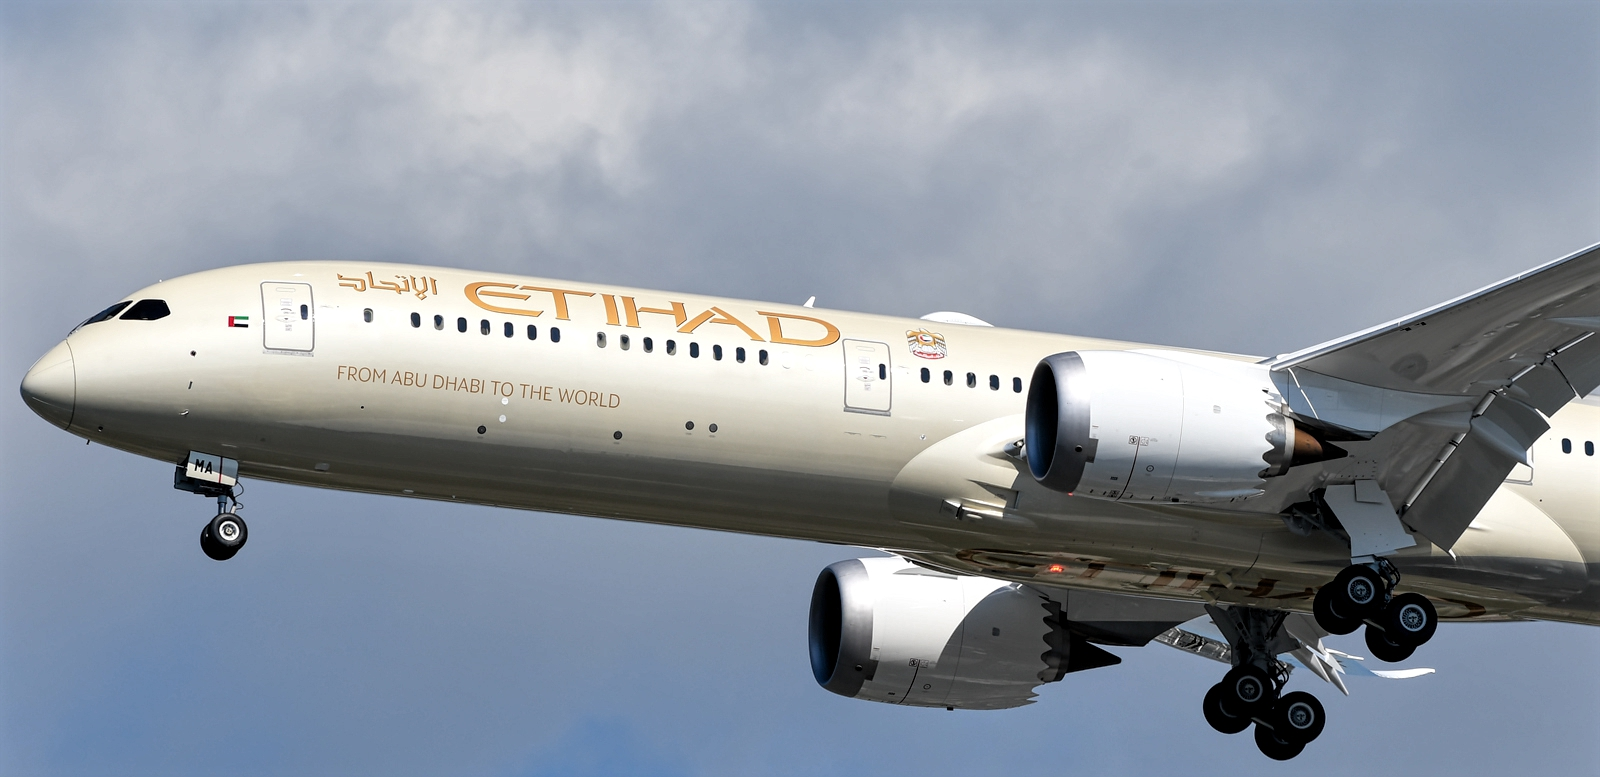 Boeing 787-10 of Etihad Airways A6-BMB November 2018 Delivery